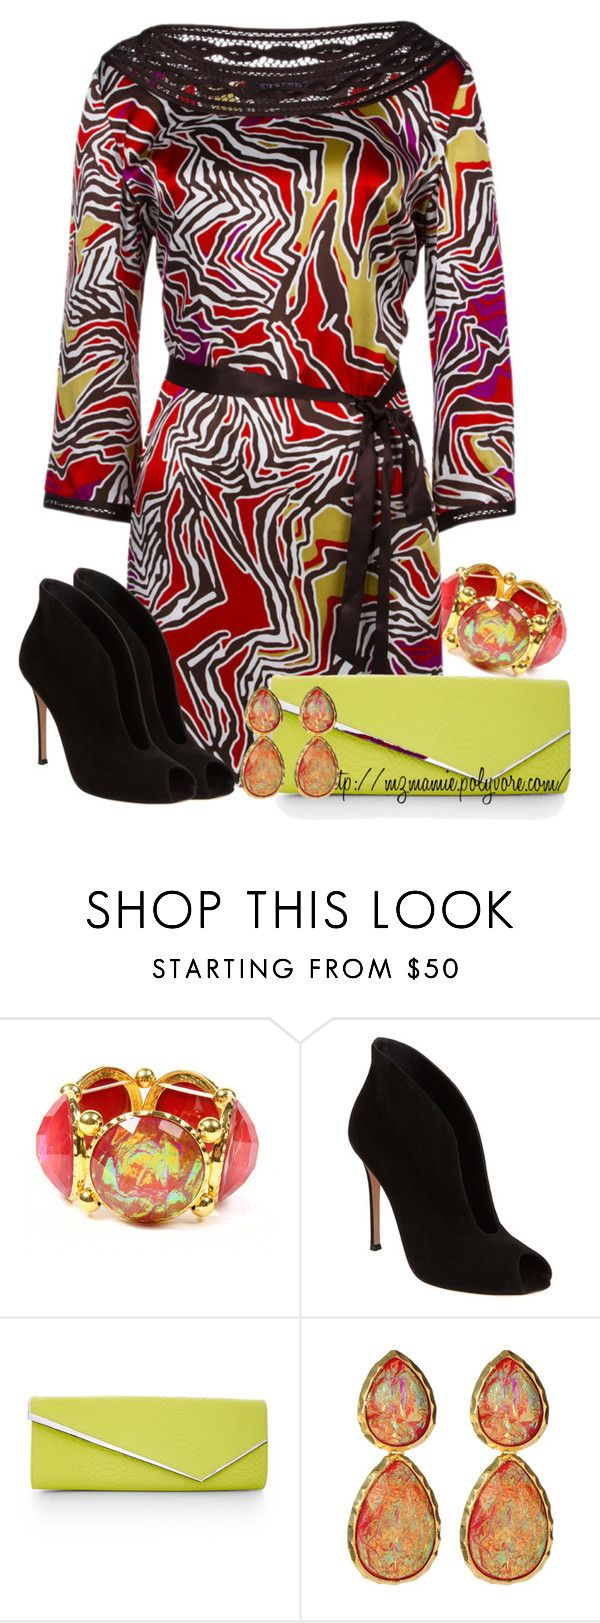 """Untitled #574"" by mzmamie ❤ liked on Polyvore featuring Amrita Singh, Gianvito Rossi and BCBGMAXAZRIA"